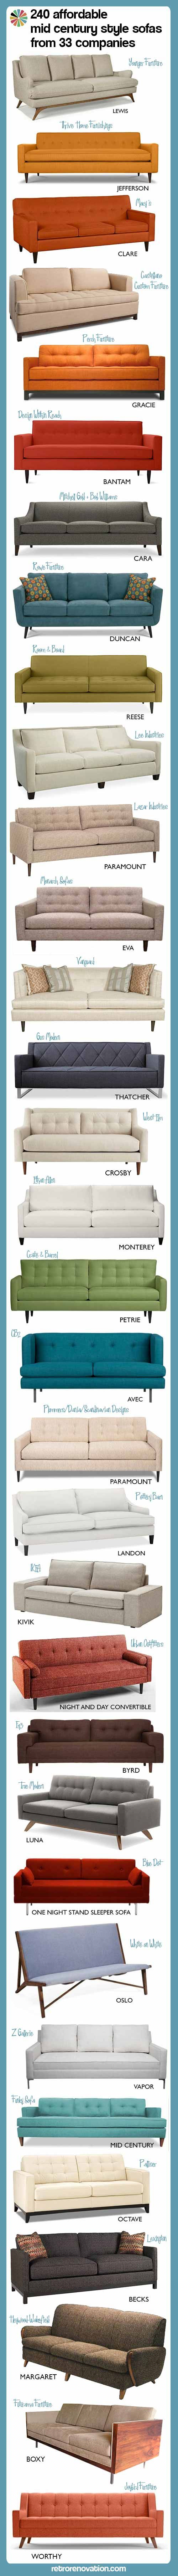 240 affordable mid century modern style sofas -- from 33 companies - Retro Renovation